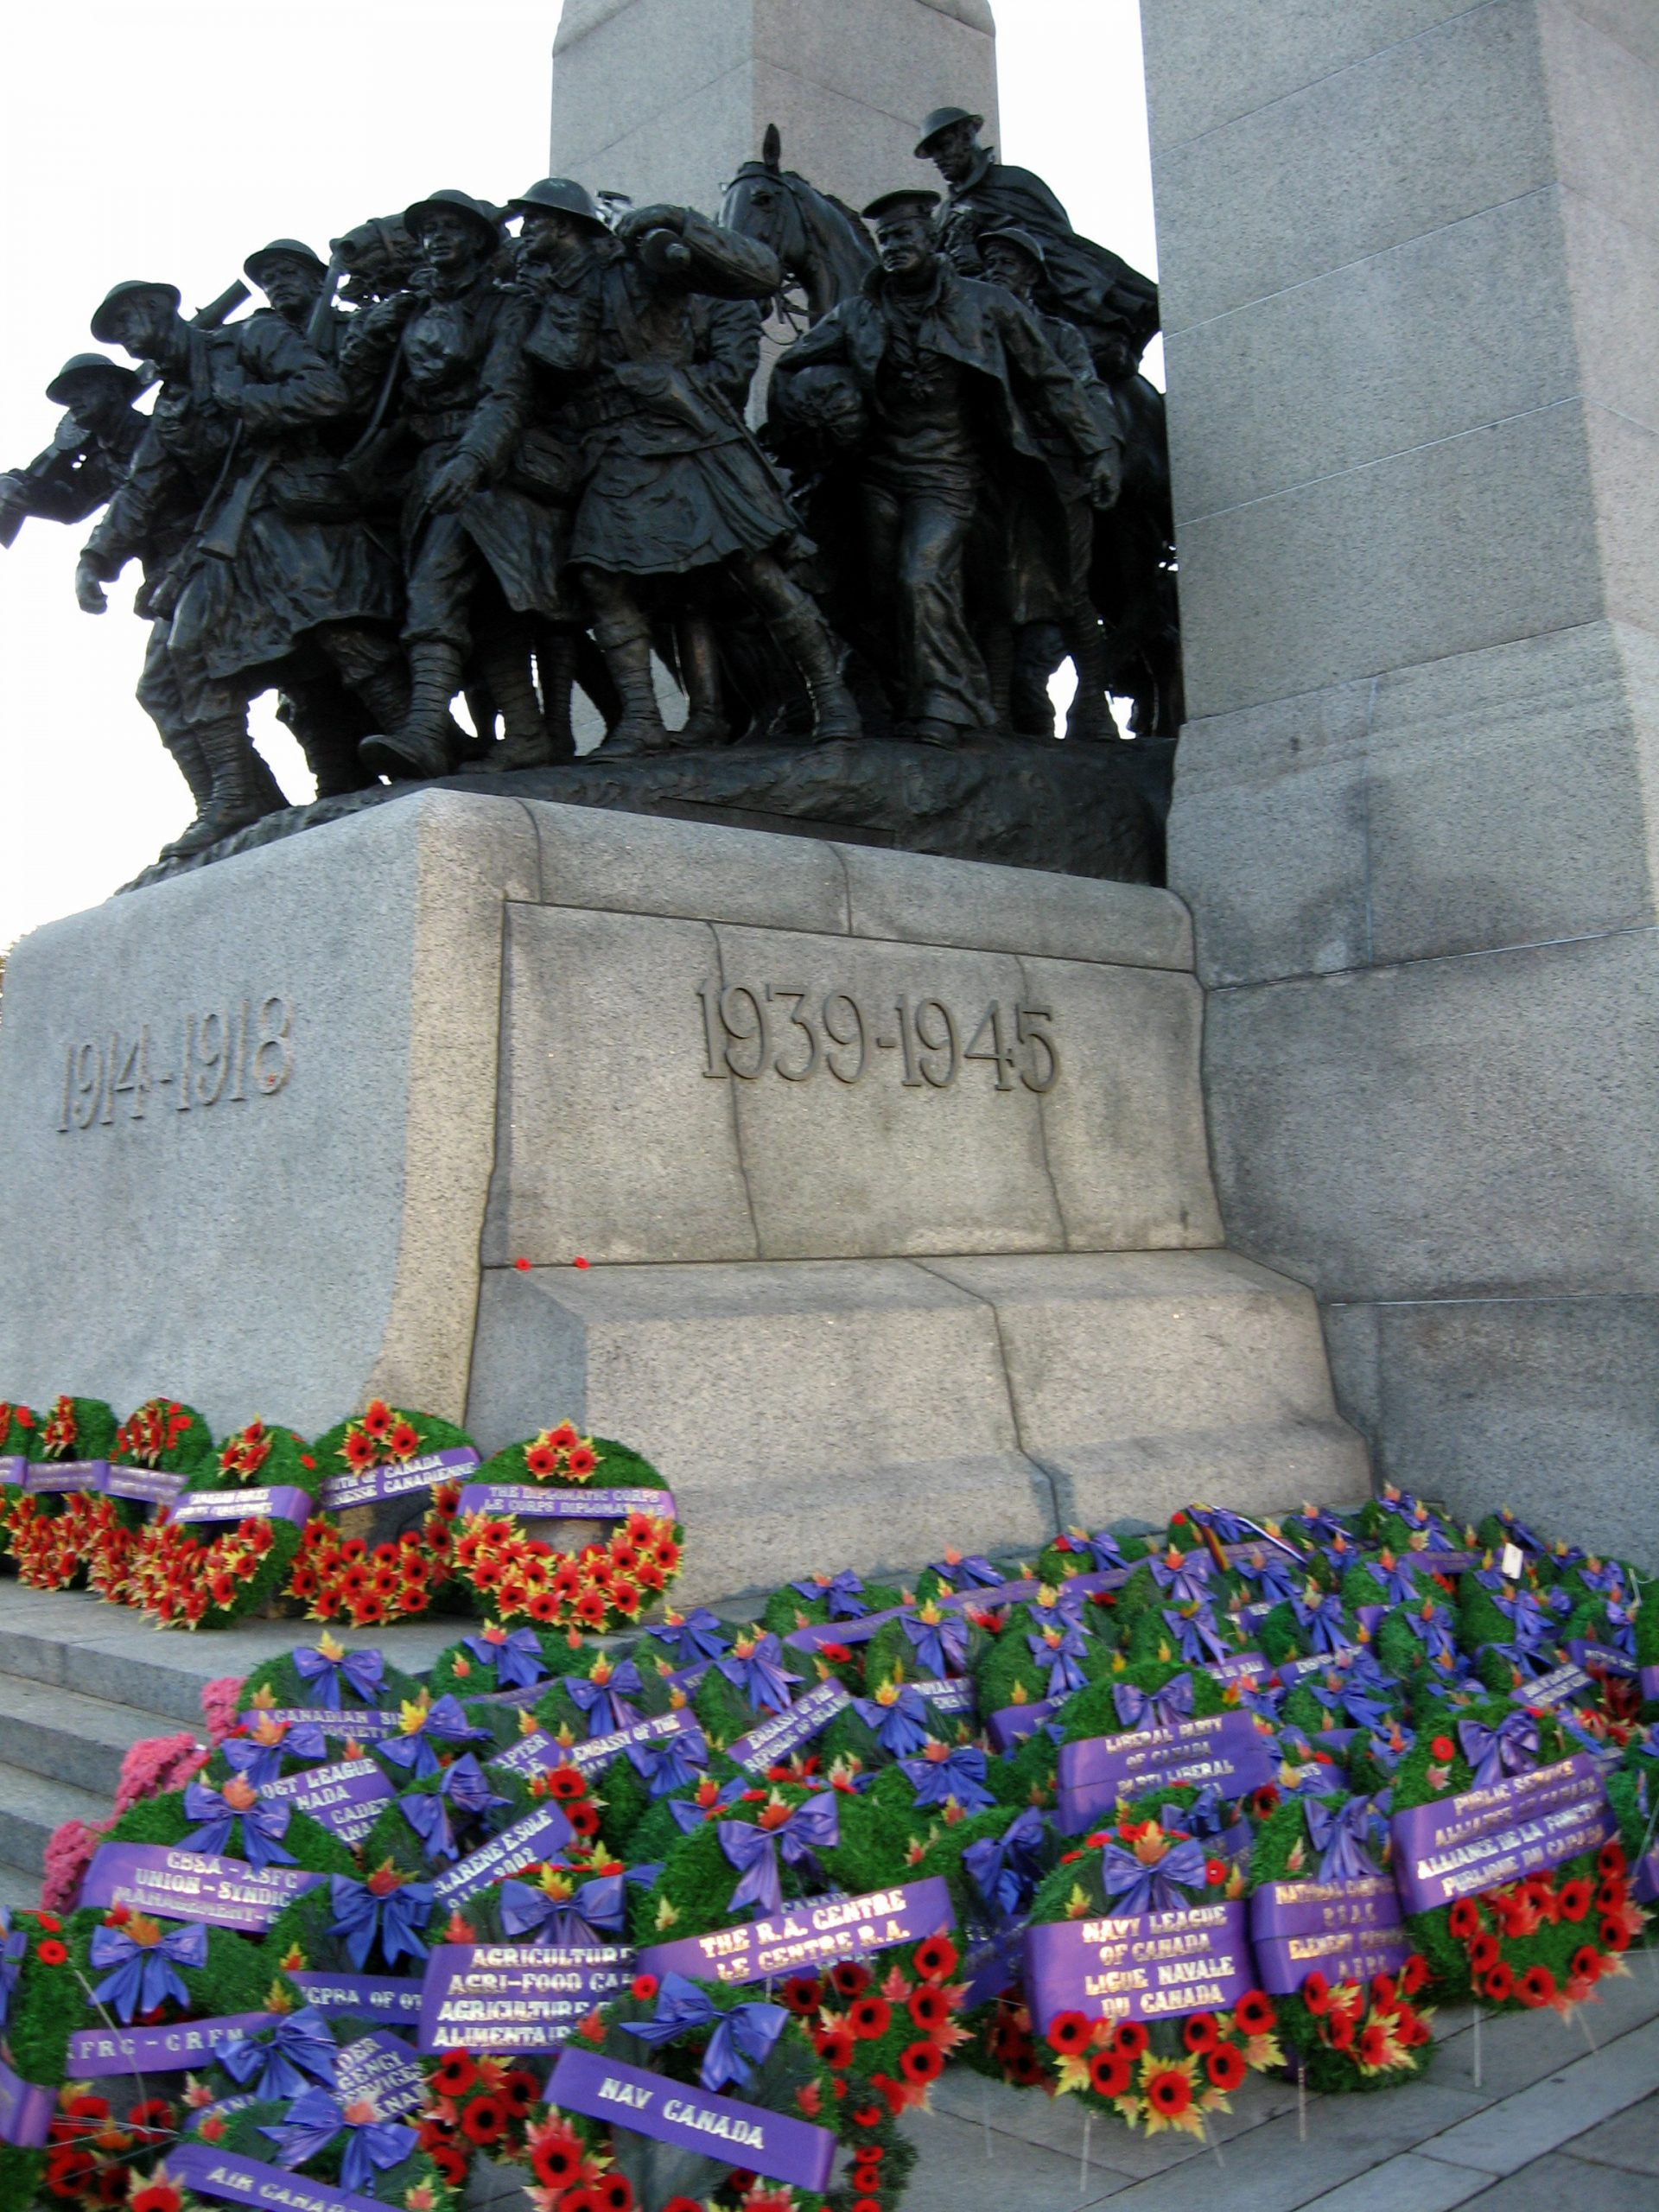 celebrates the remembrance day and so does chaparral